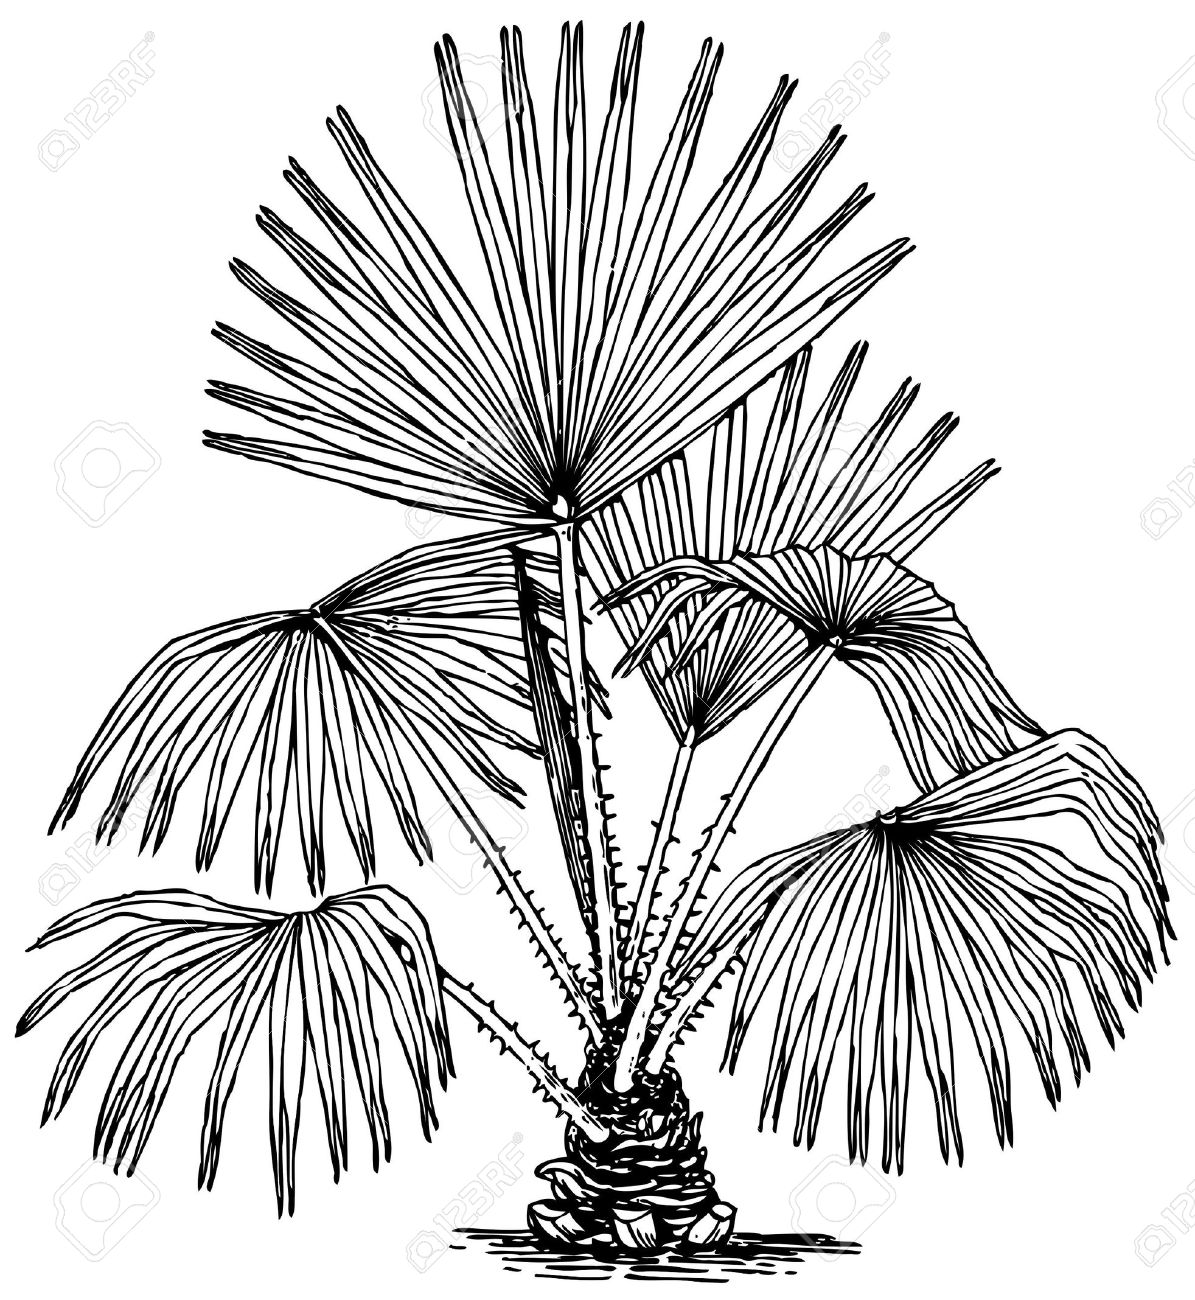 Swamp cabbage tree clipart.